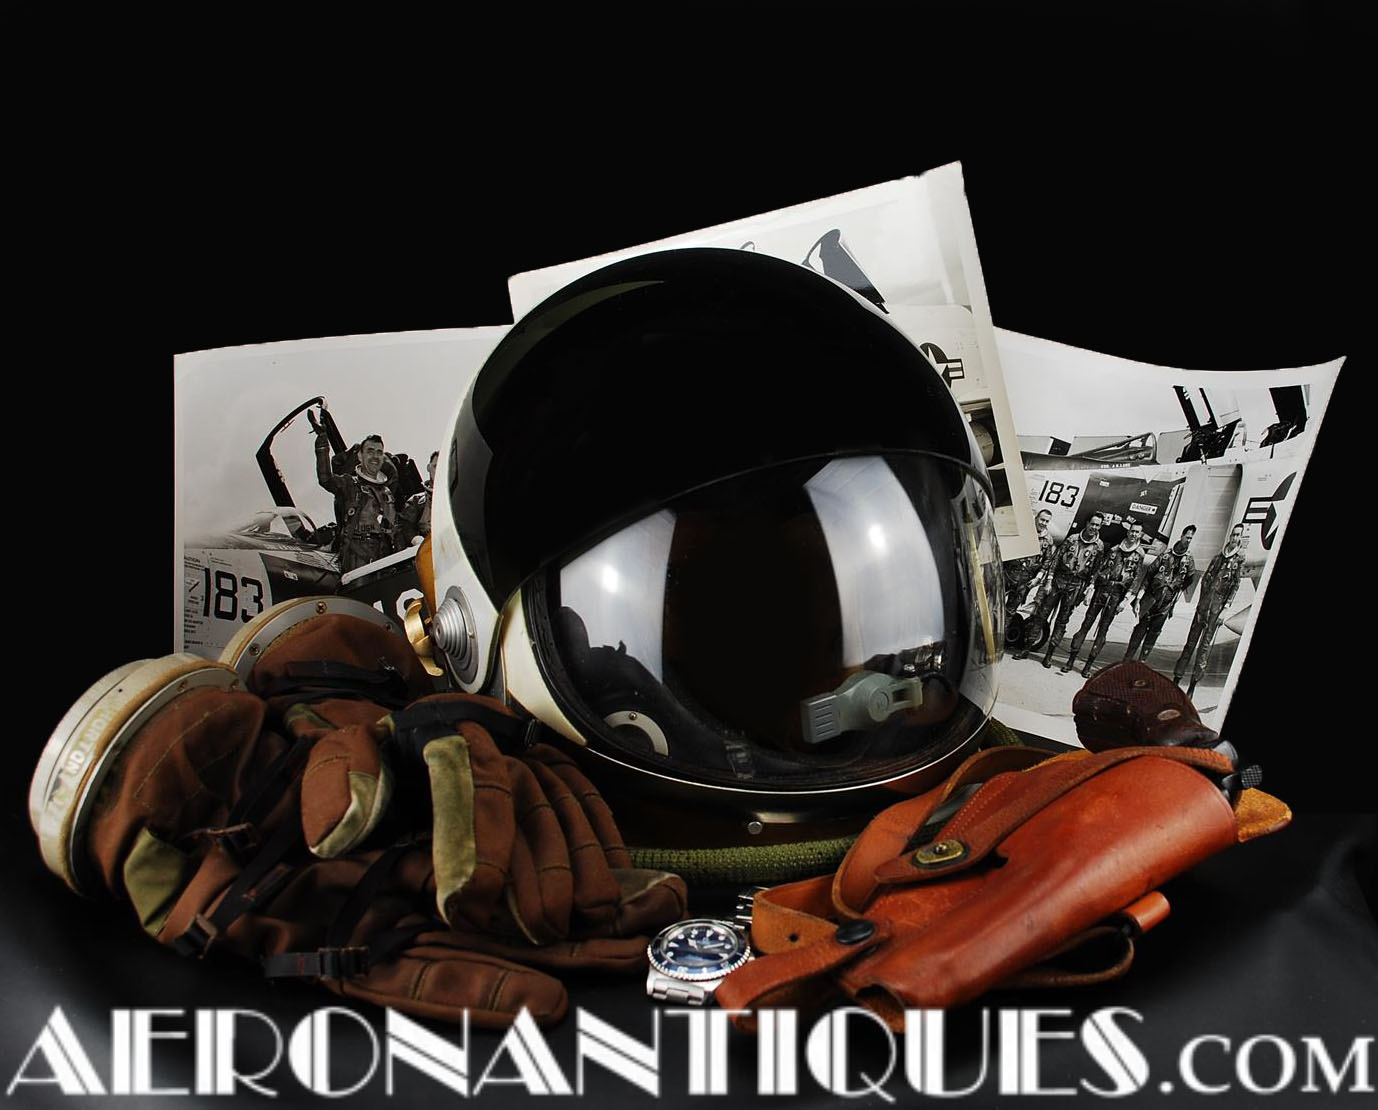 Vintage High Quality Flight Gear for the Discerning Enthusiasts